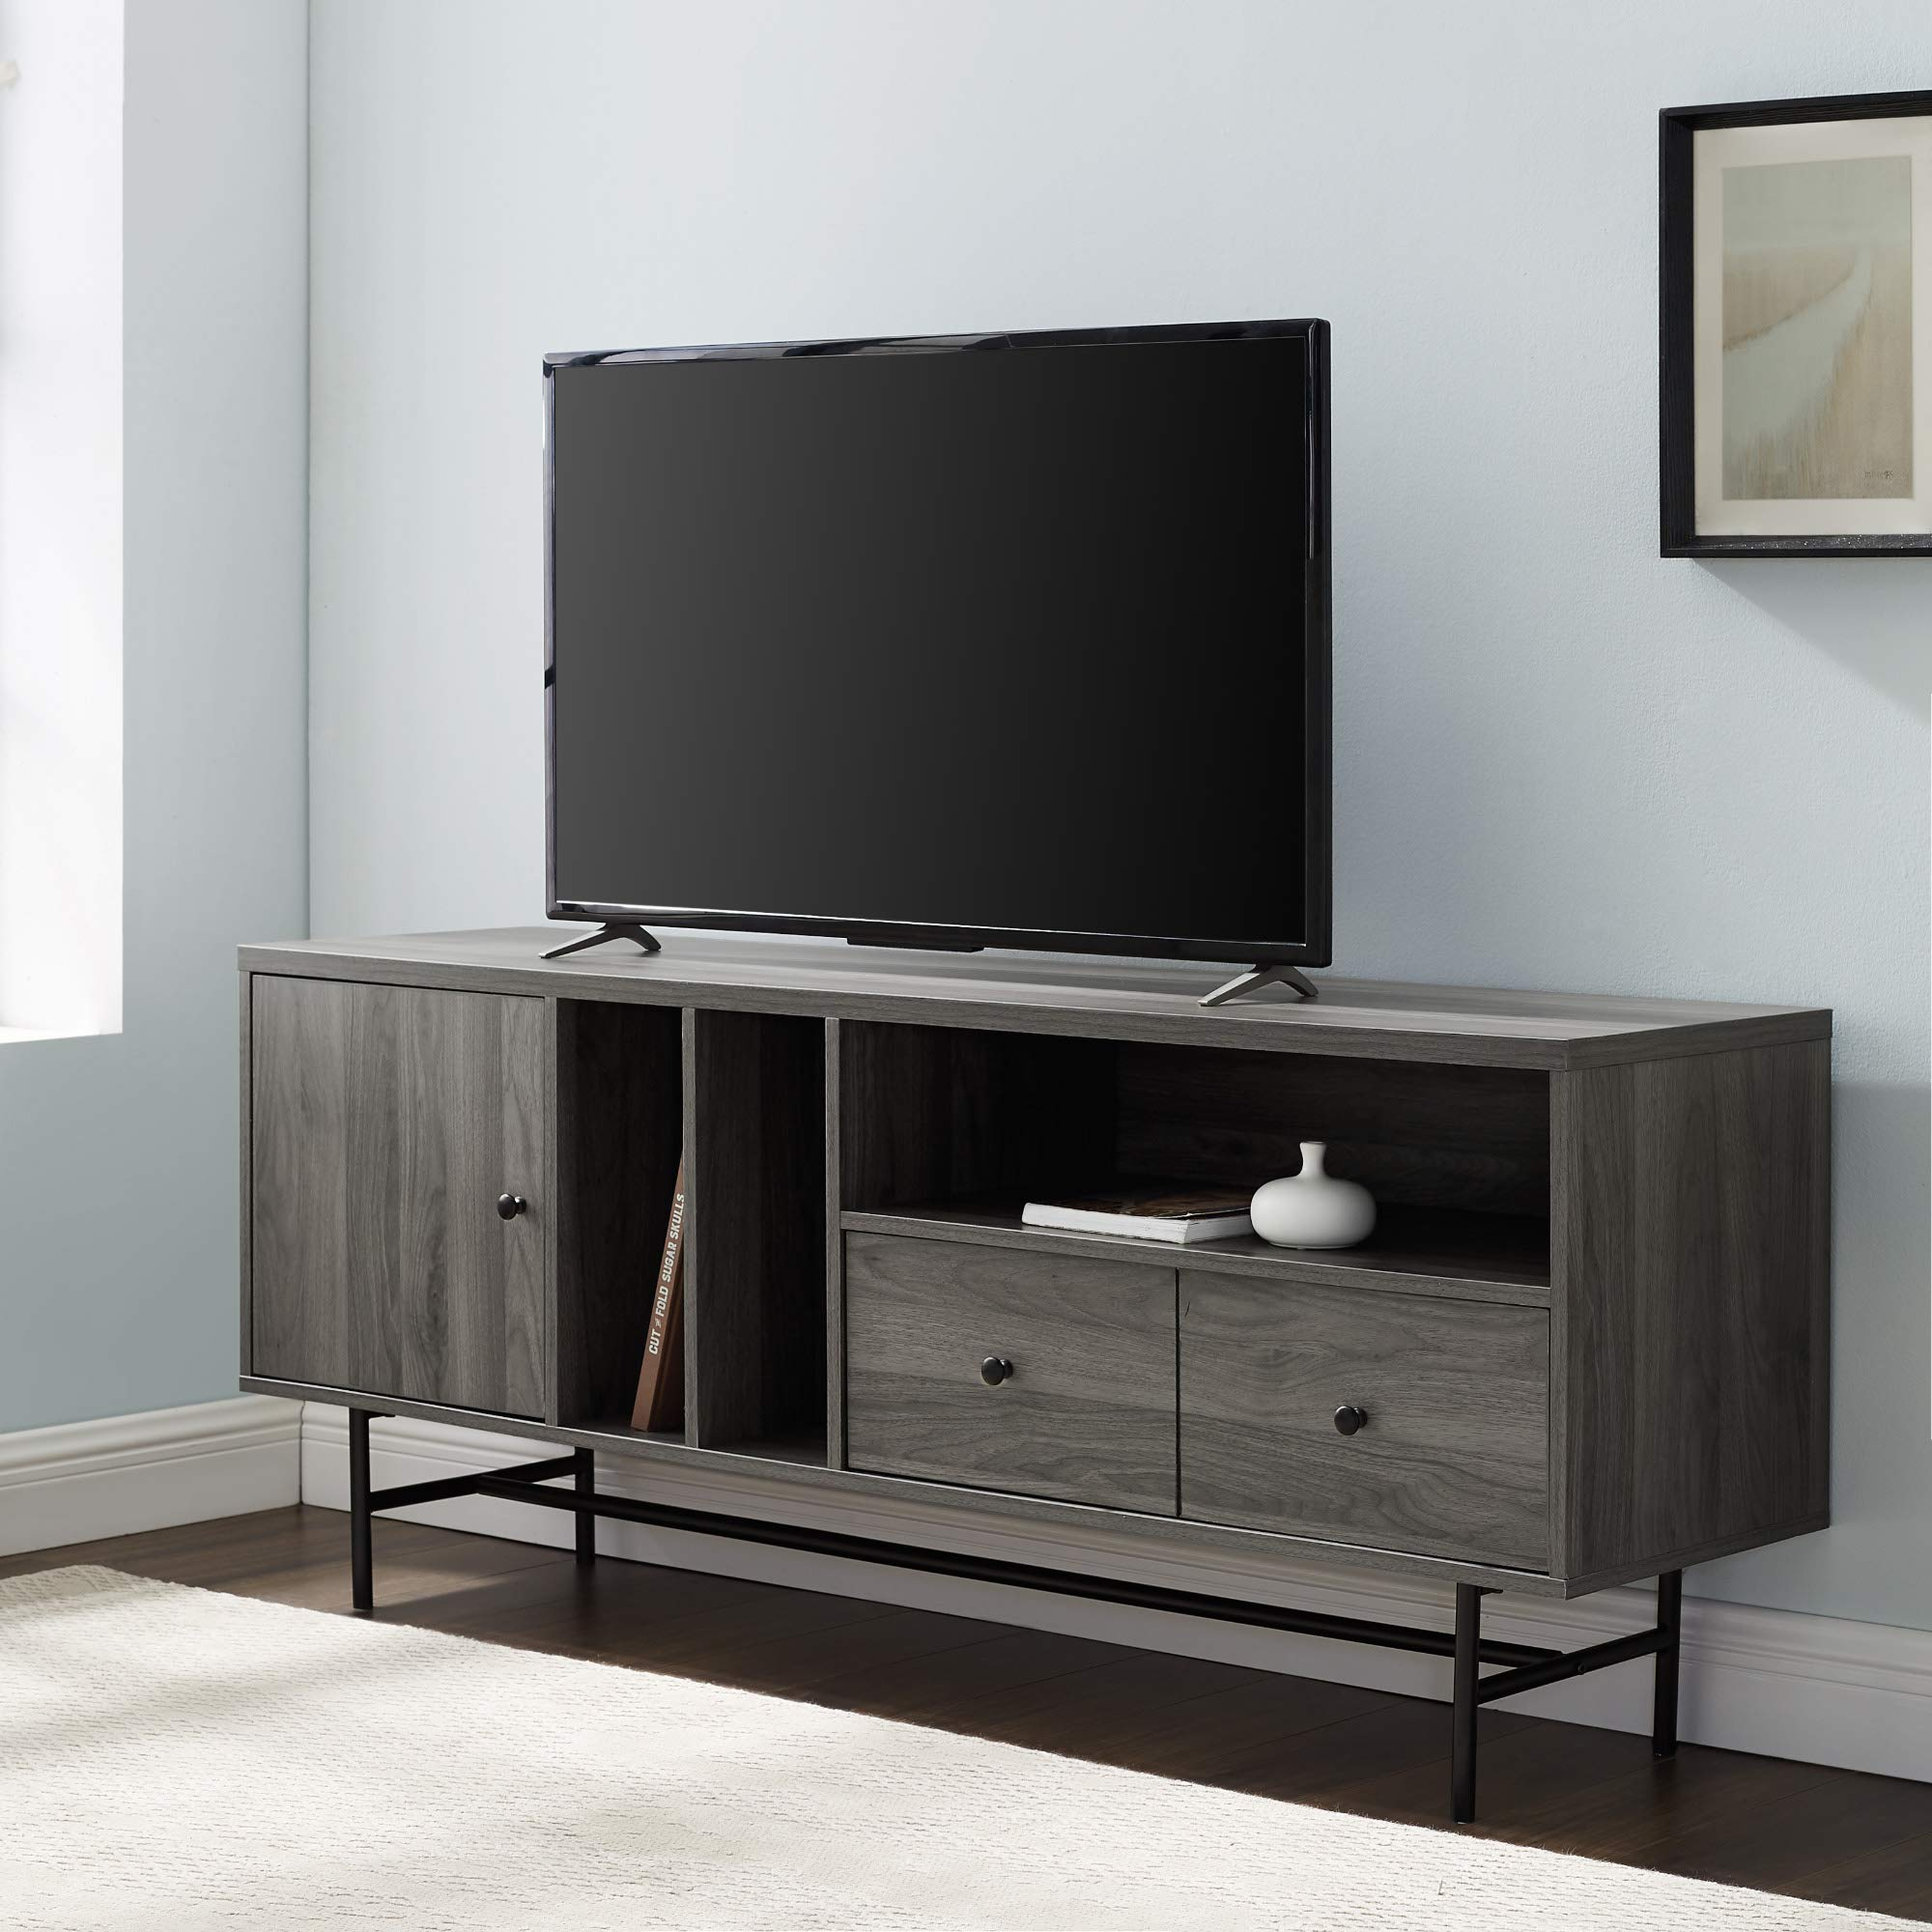 WE Furniture Modern 1-Drawer TV Stand with Record Storage, 60'', Slate Grey by WE Furniture